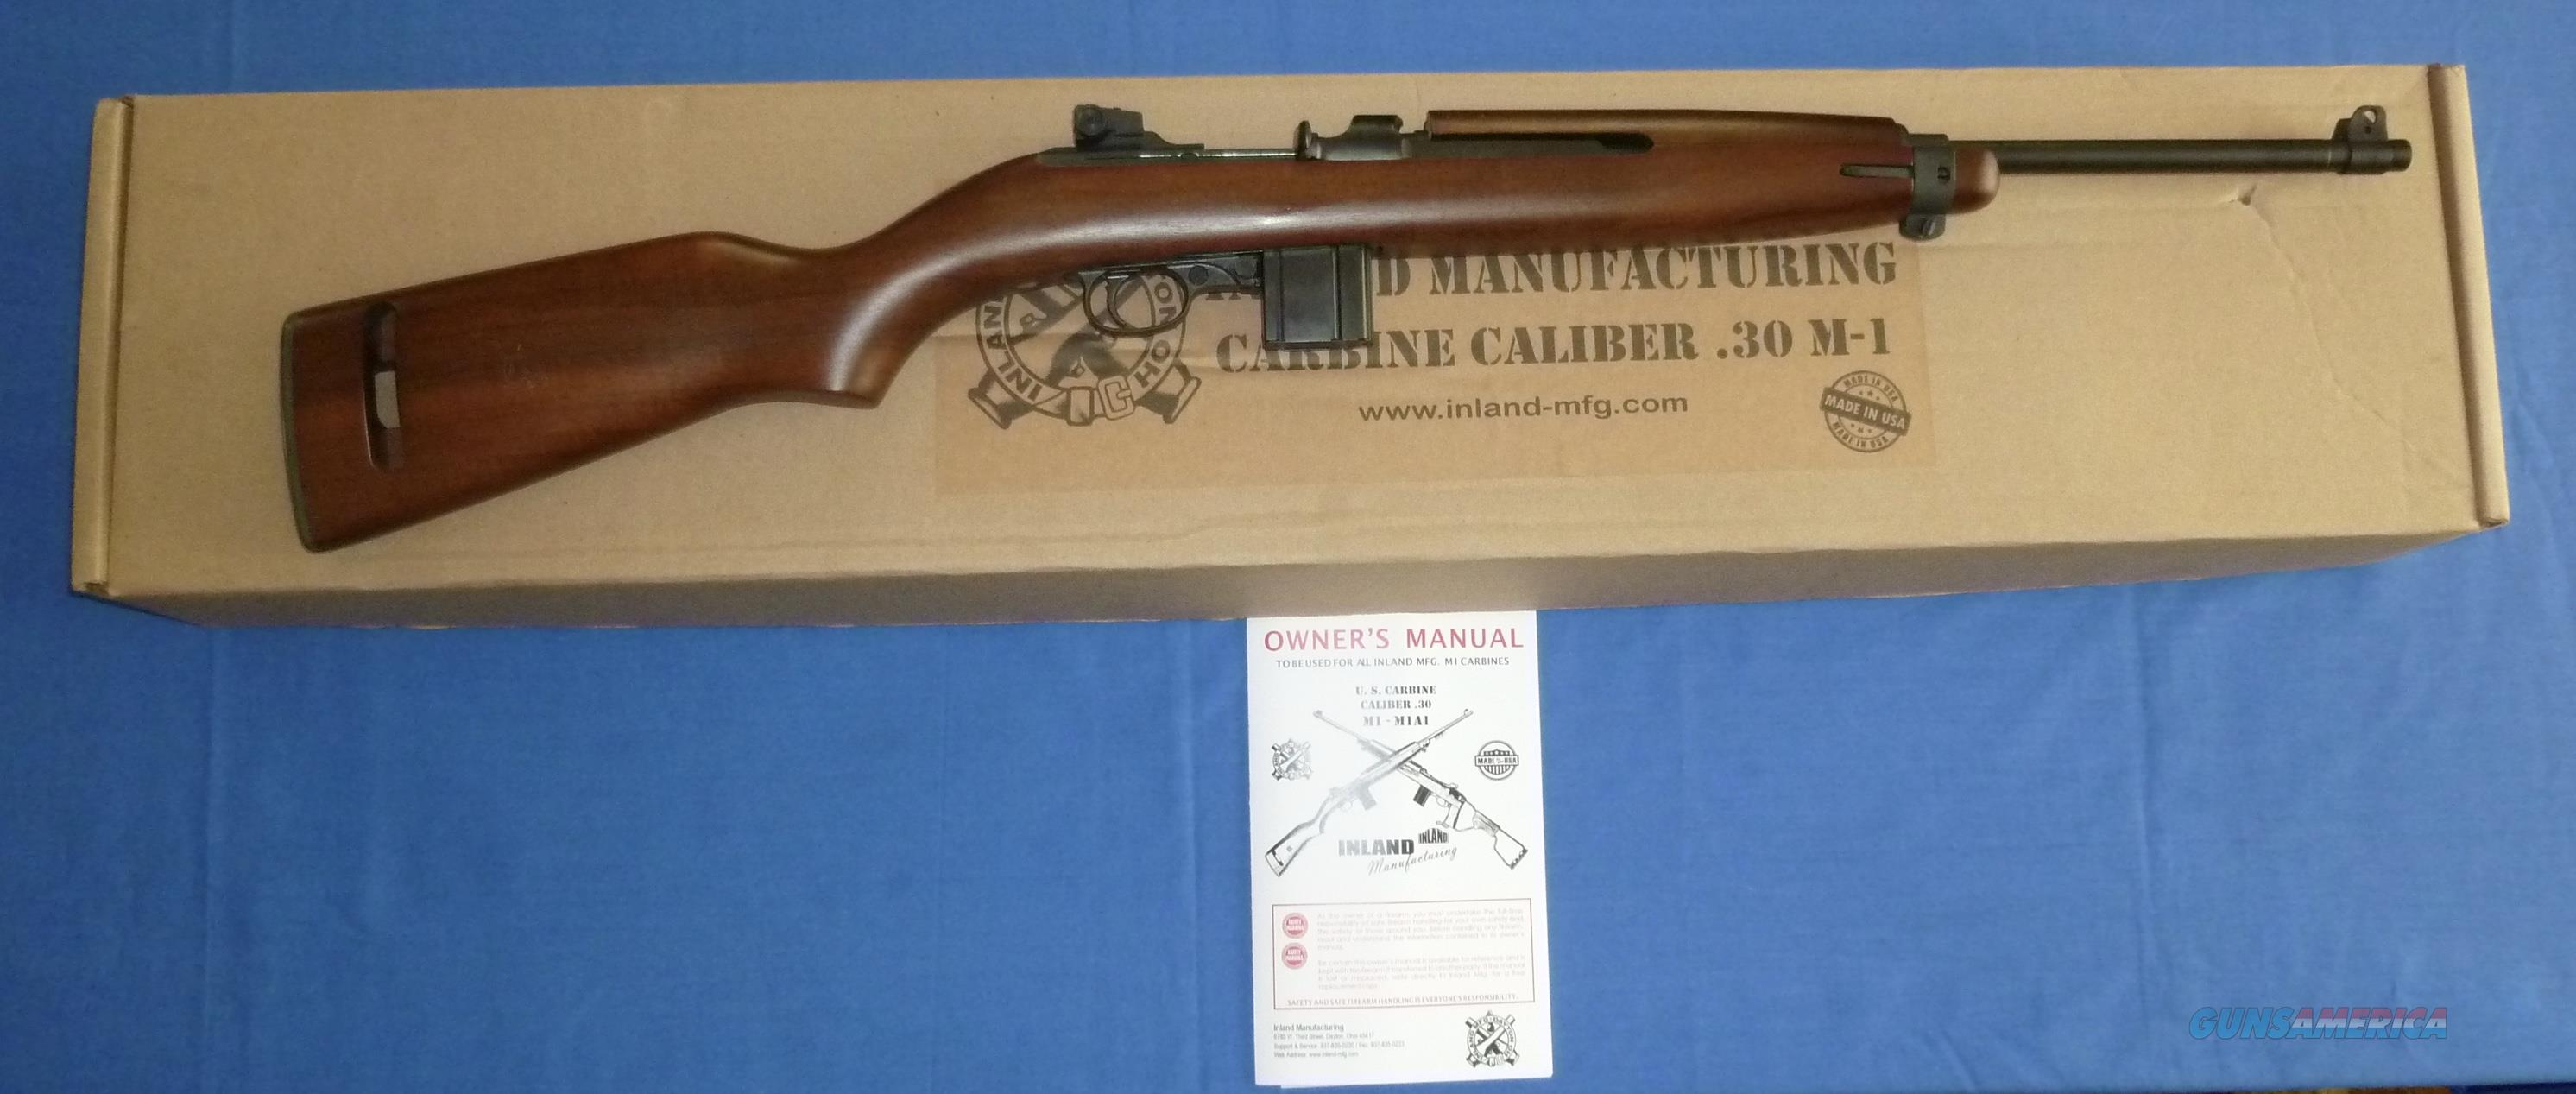 INLAND MFG MODEL 1944 M1 CARBINE, .30 CAR. CALIBER  Guns > Rifles > Military Misc. Rifles US > M1 Carbine